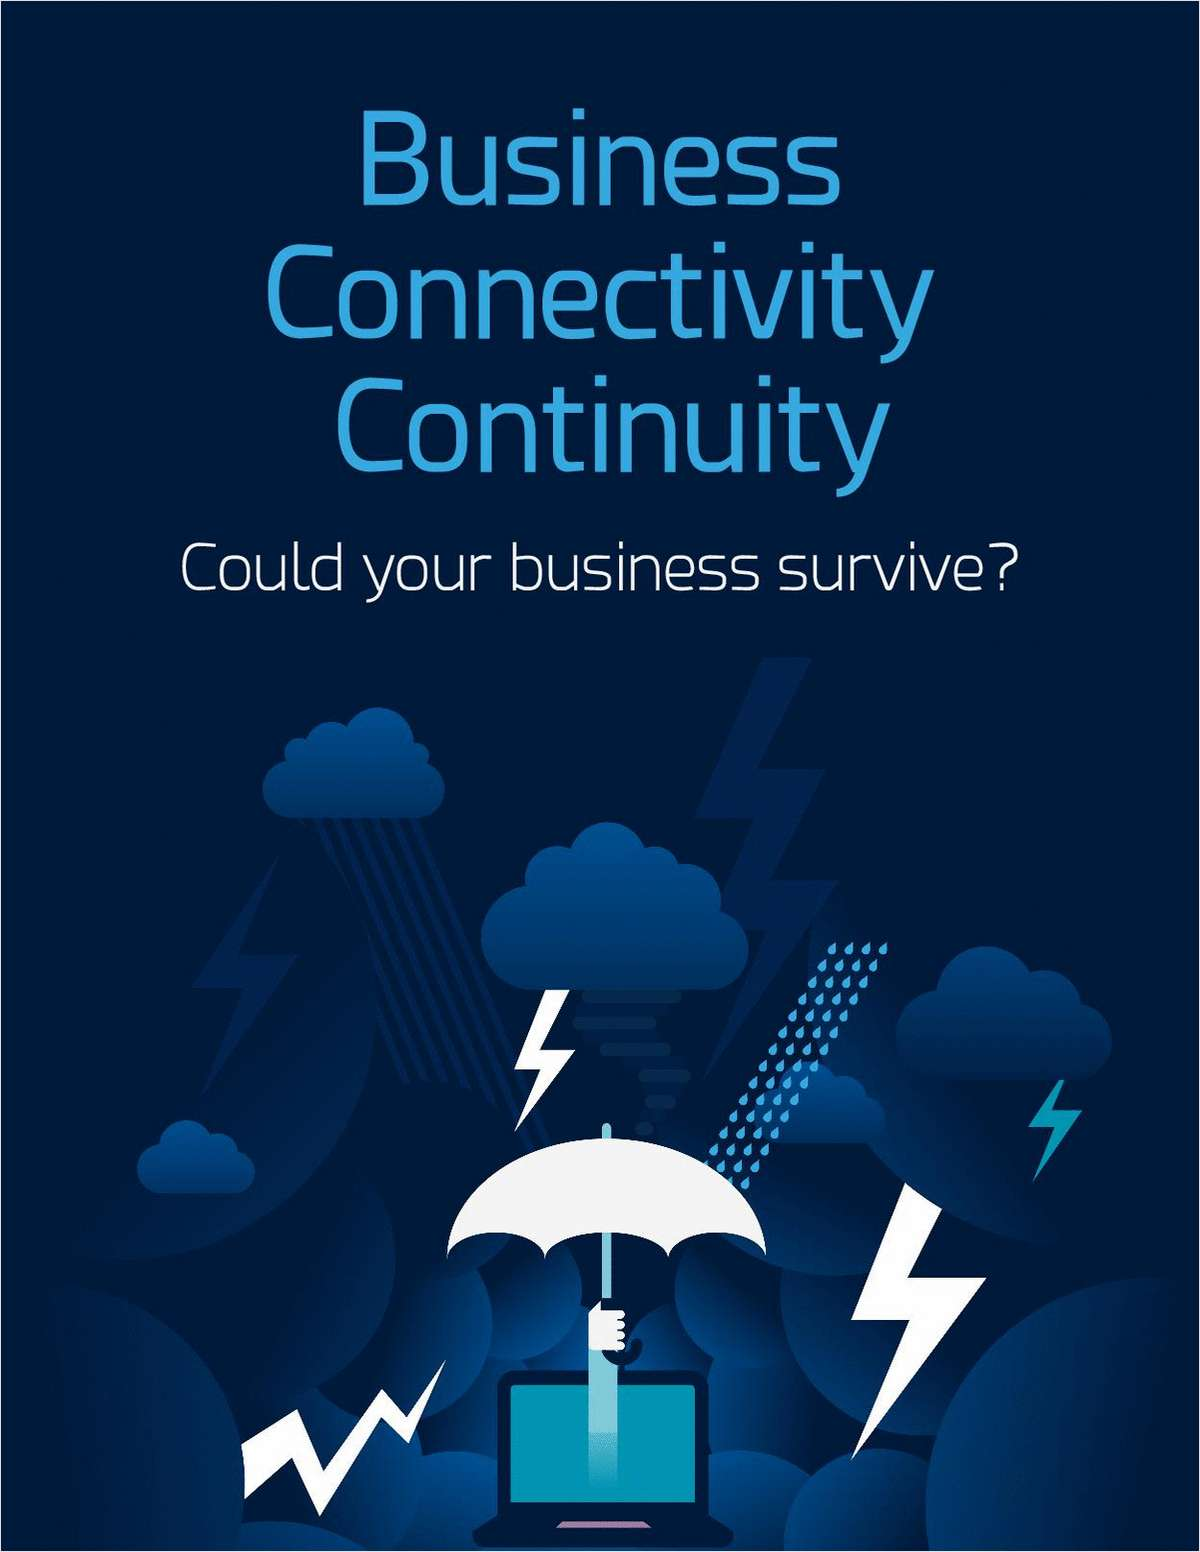 Business Connectivity Continuity